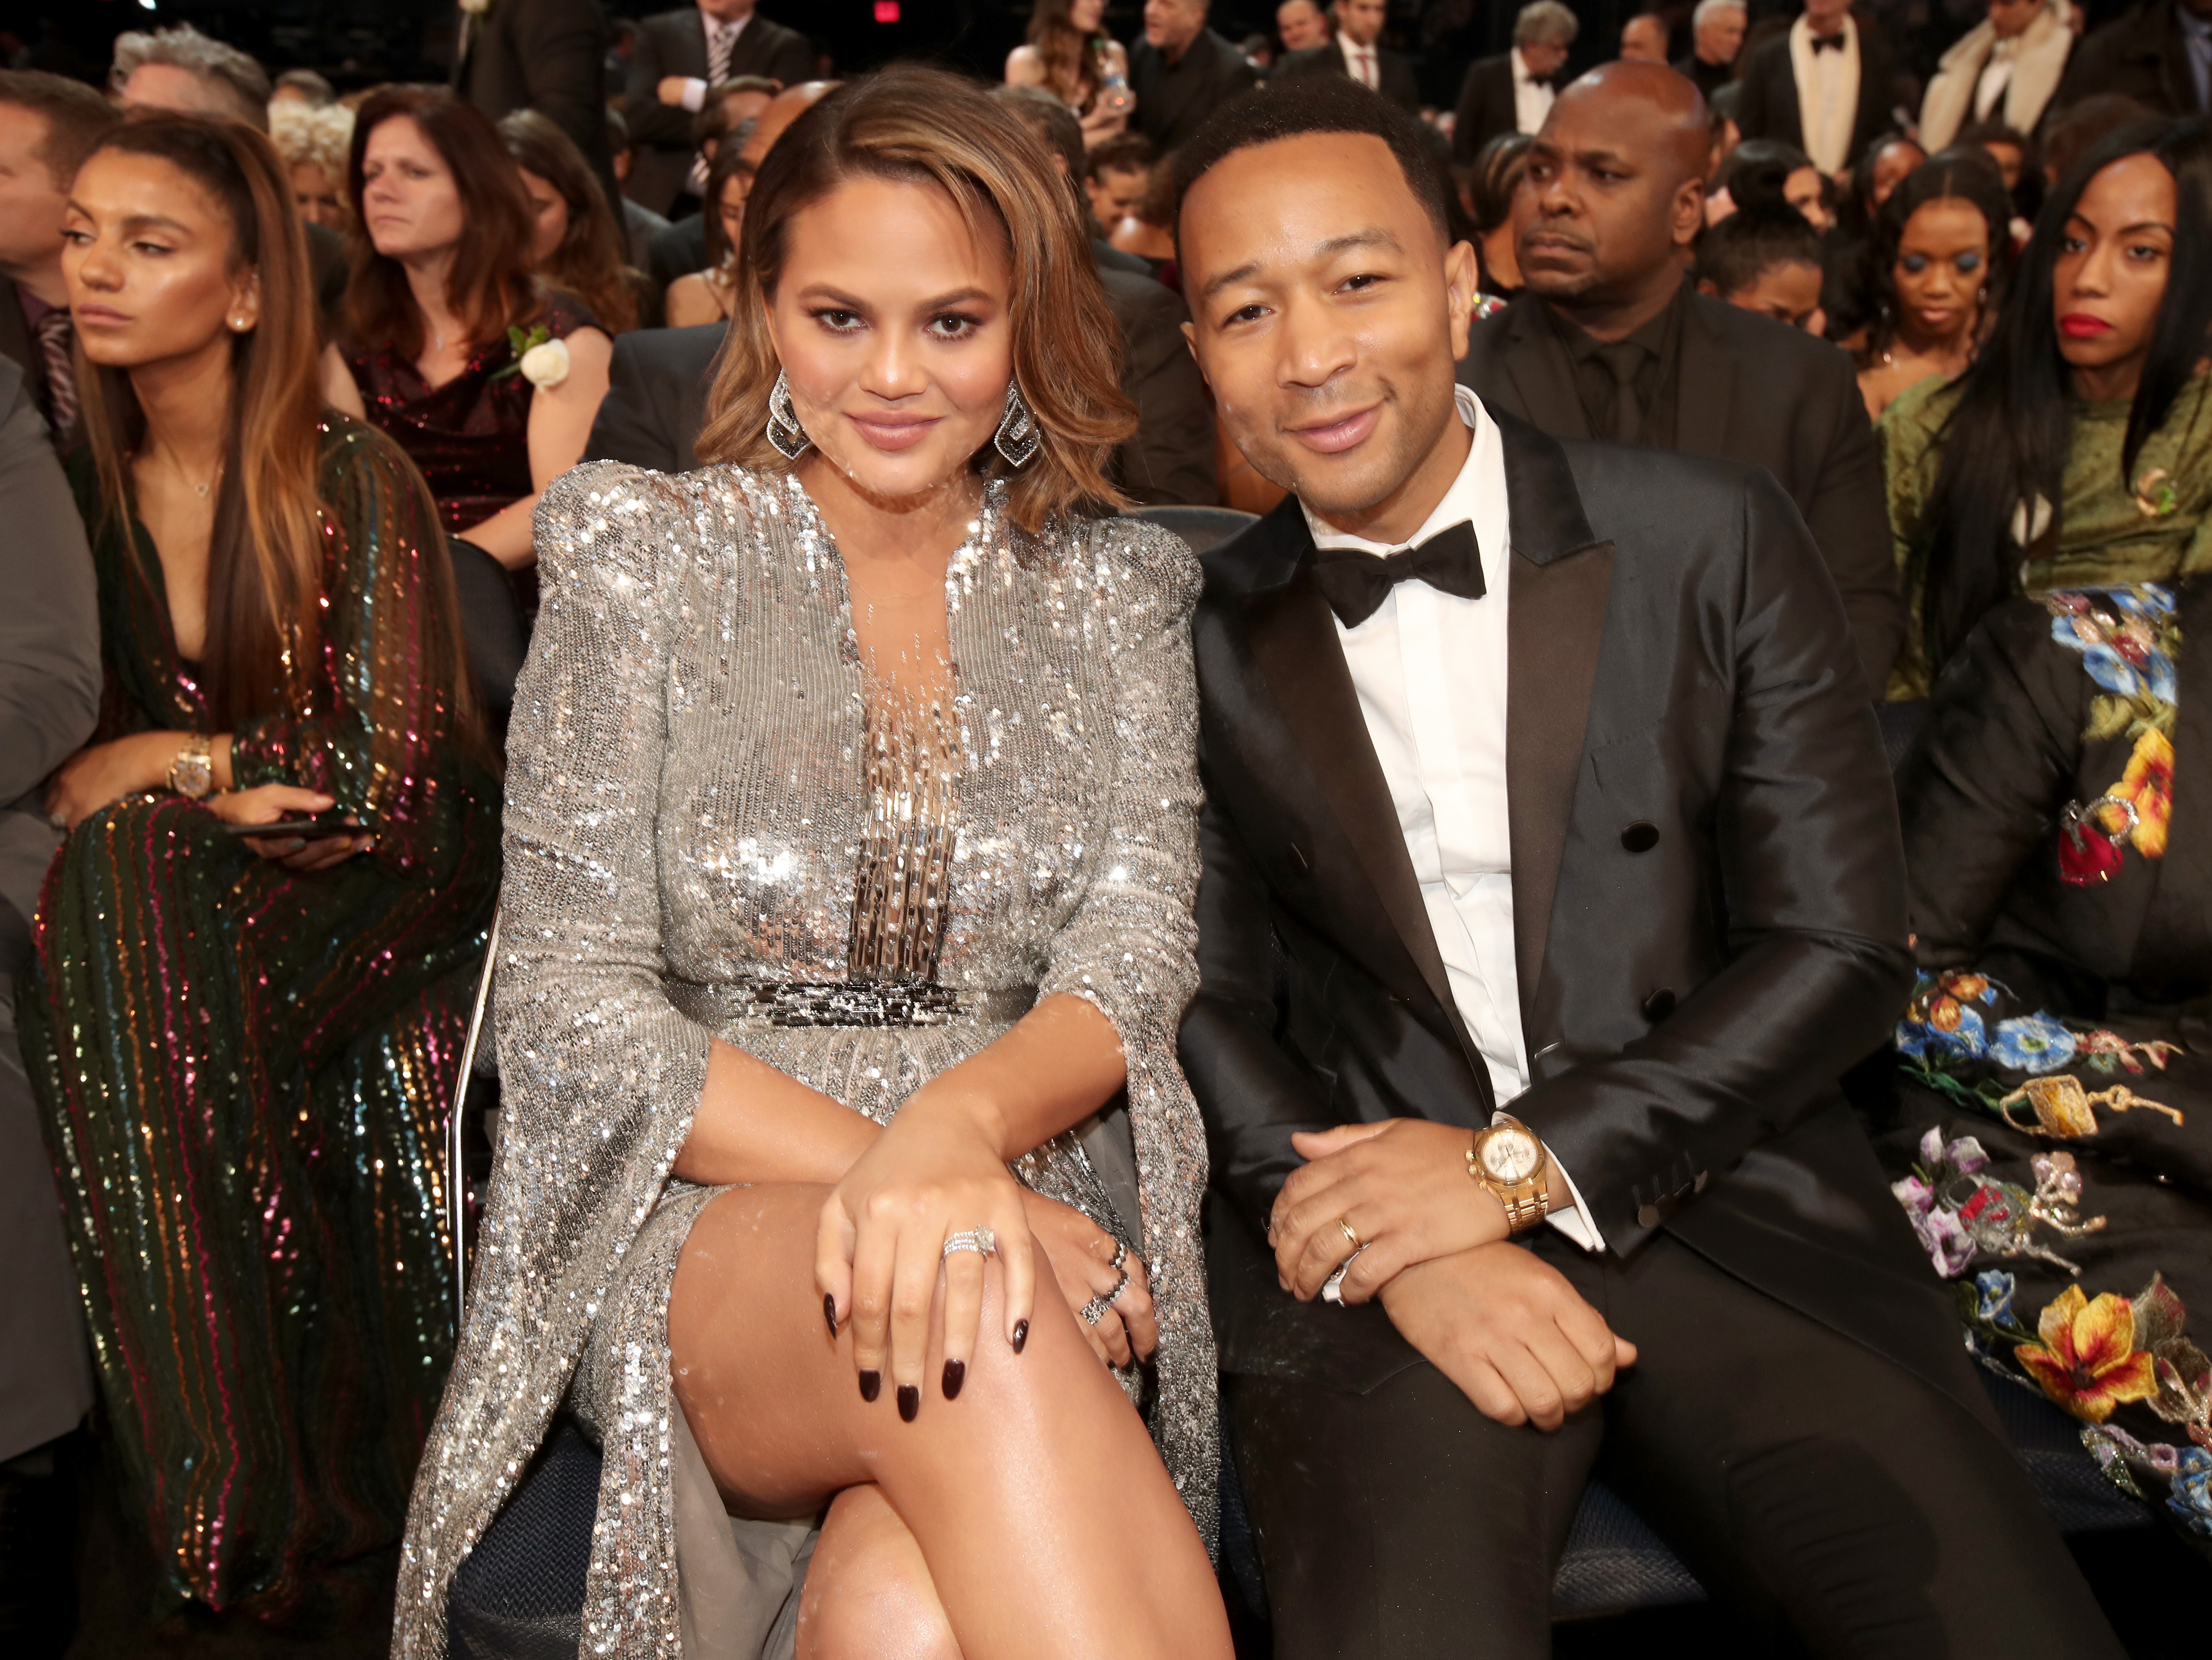 Model Chrissy Teigen (L) and recording artist John Legend attend the 60th Annual GRAMMY Awards at Madison Square Garden on January 28, 2018 in New York City.